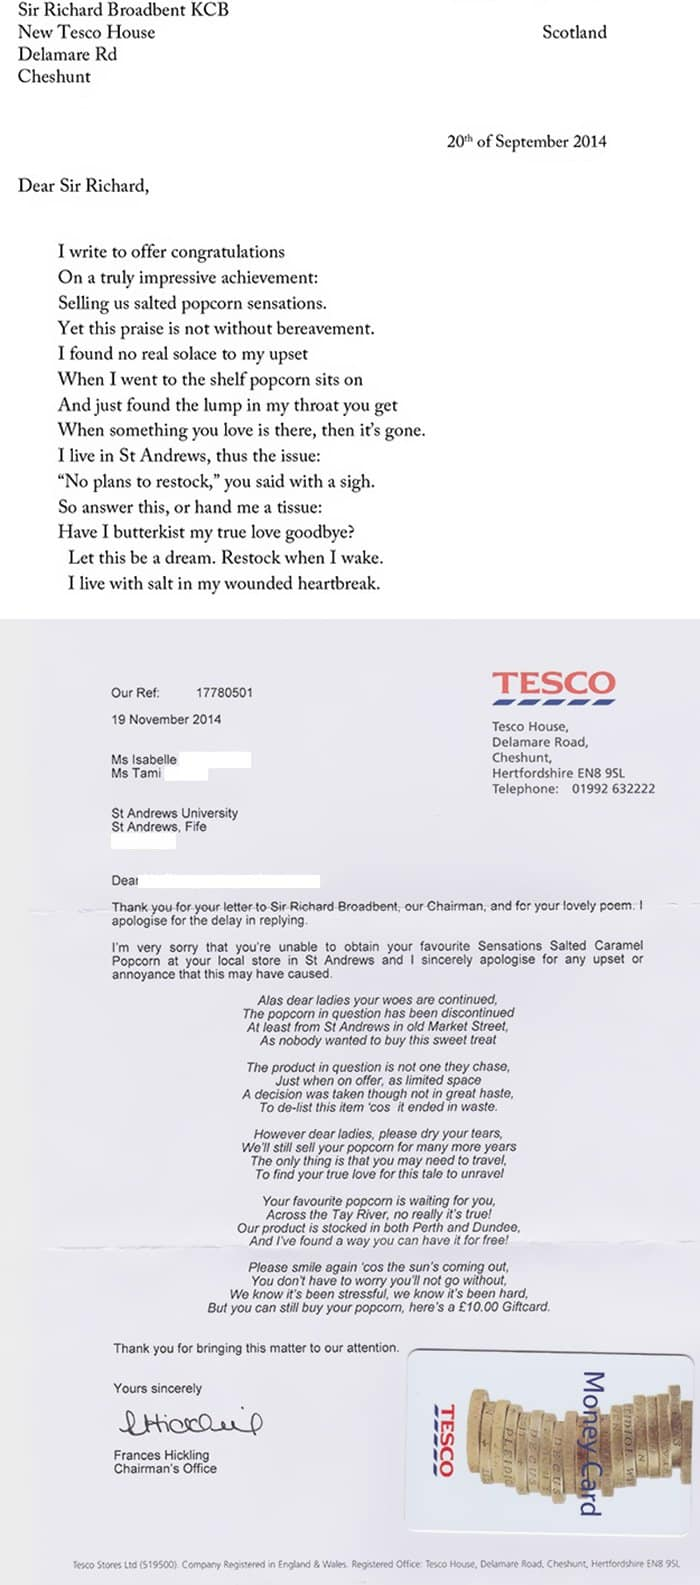 tesco-popcorn-complaint-and-response